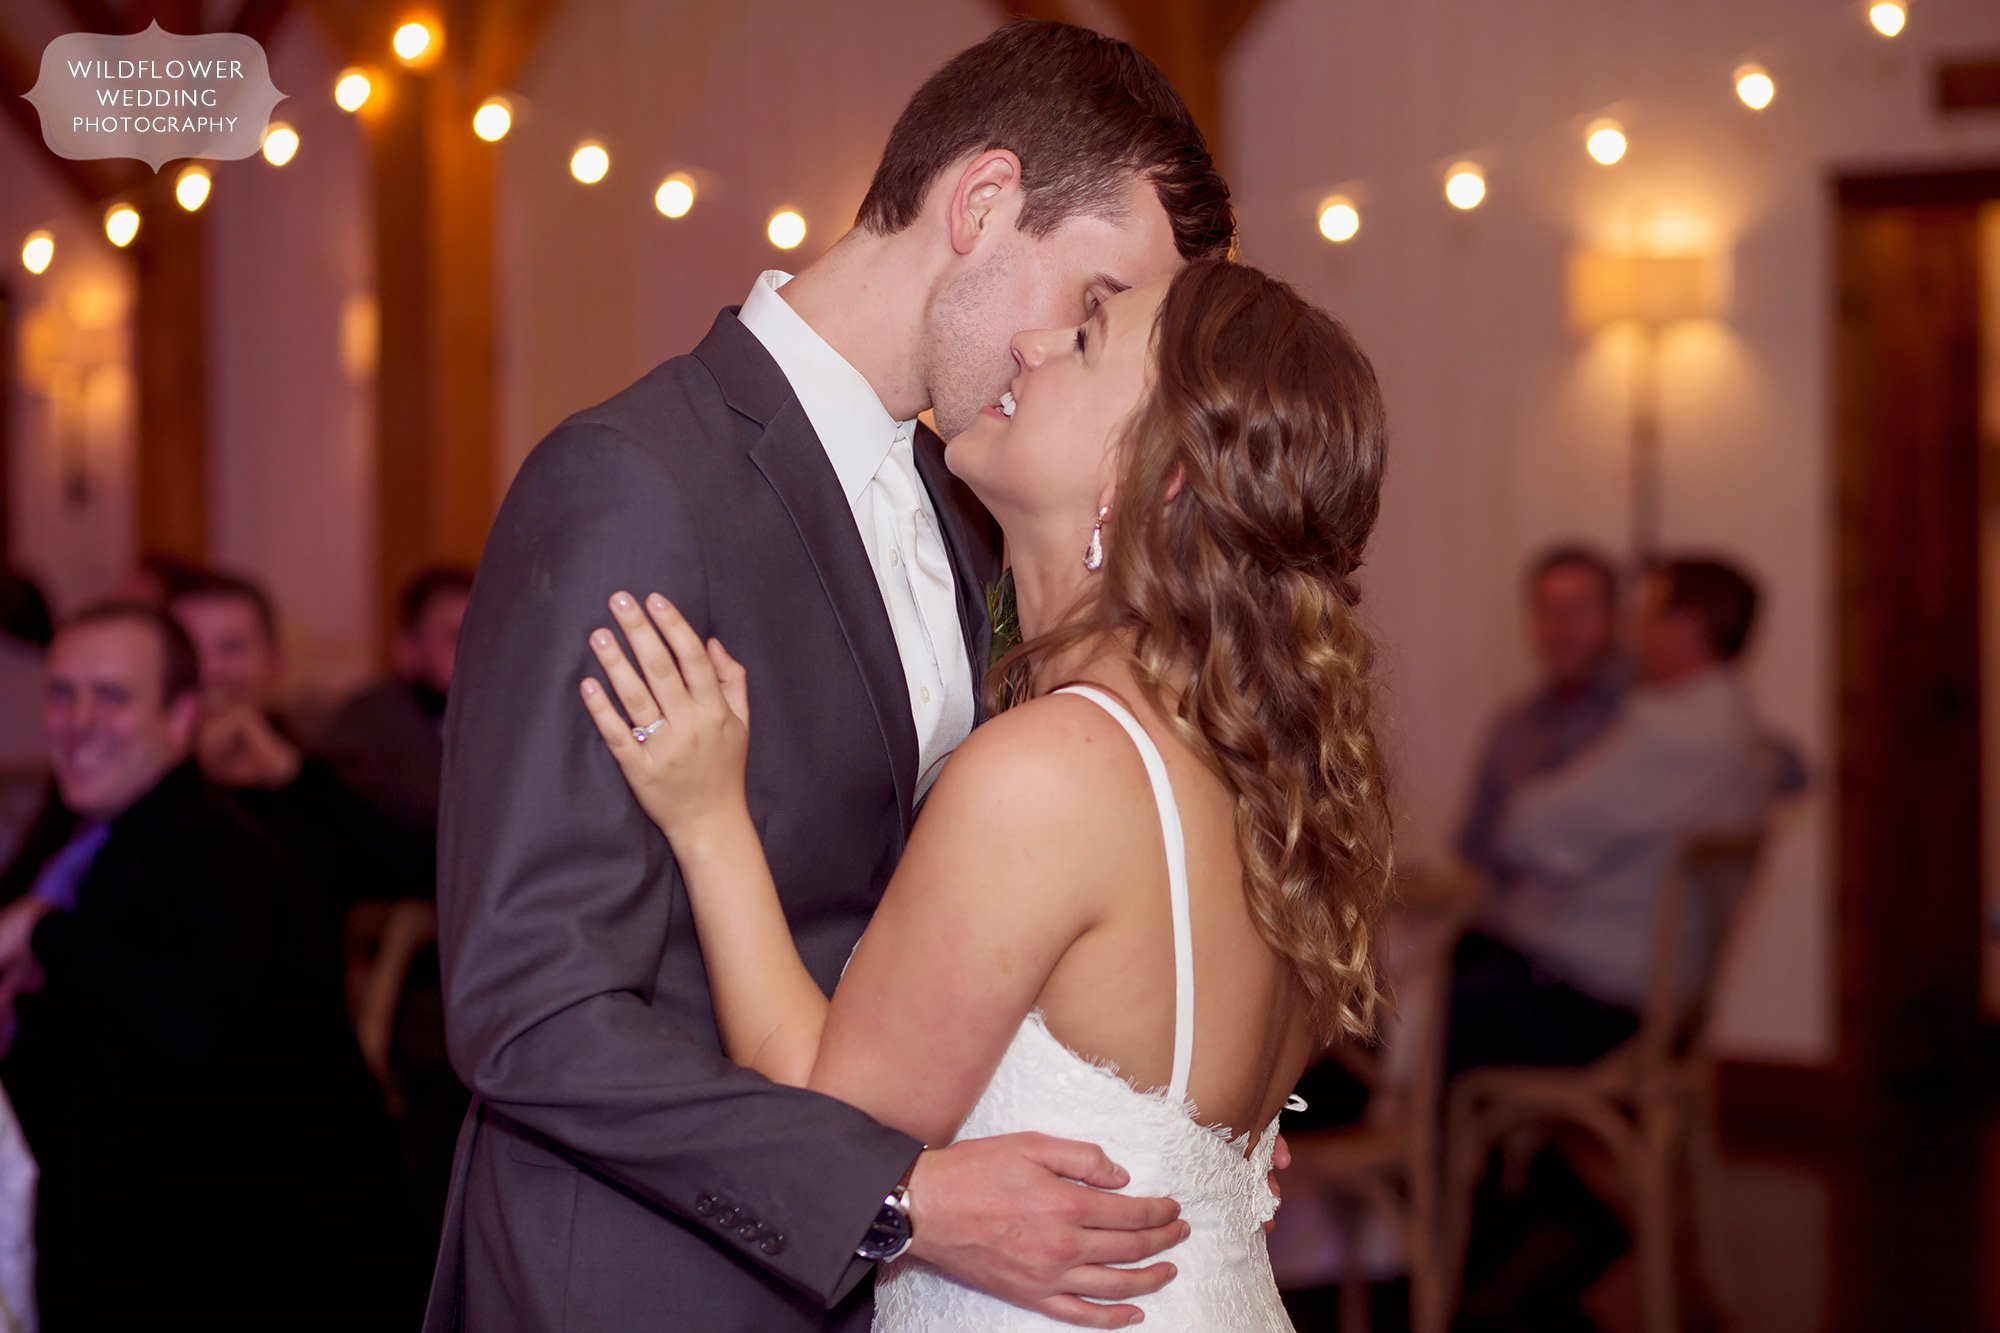 The bride and groom kiss on the dance floor with twinkle lights blurry in background behind them.